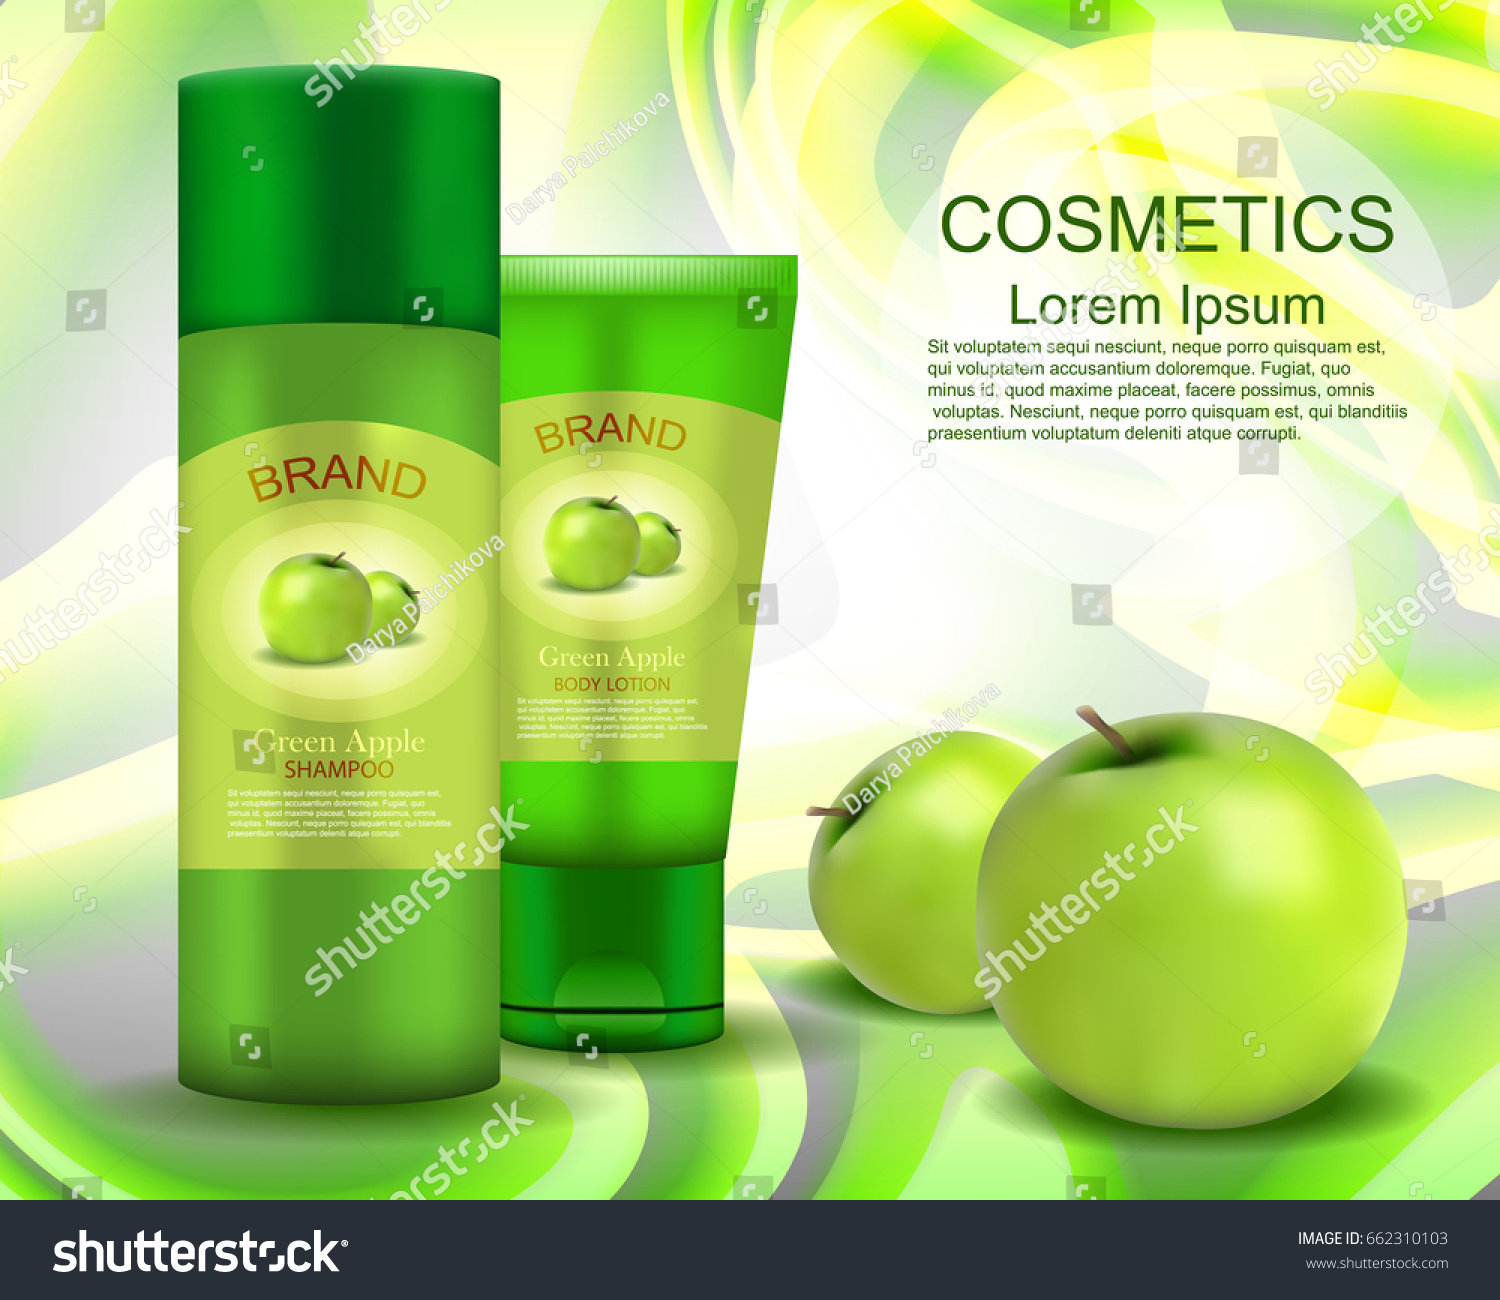 Shampoo Body Lotion Green Apple Realistic Stock Vector Royalty Free Kefir Cosmetics